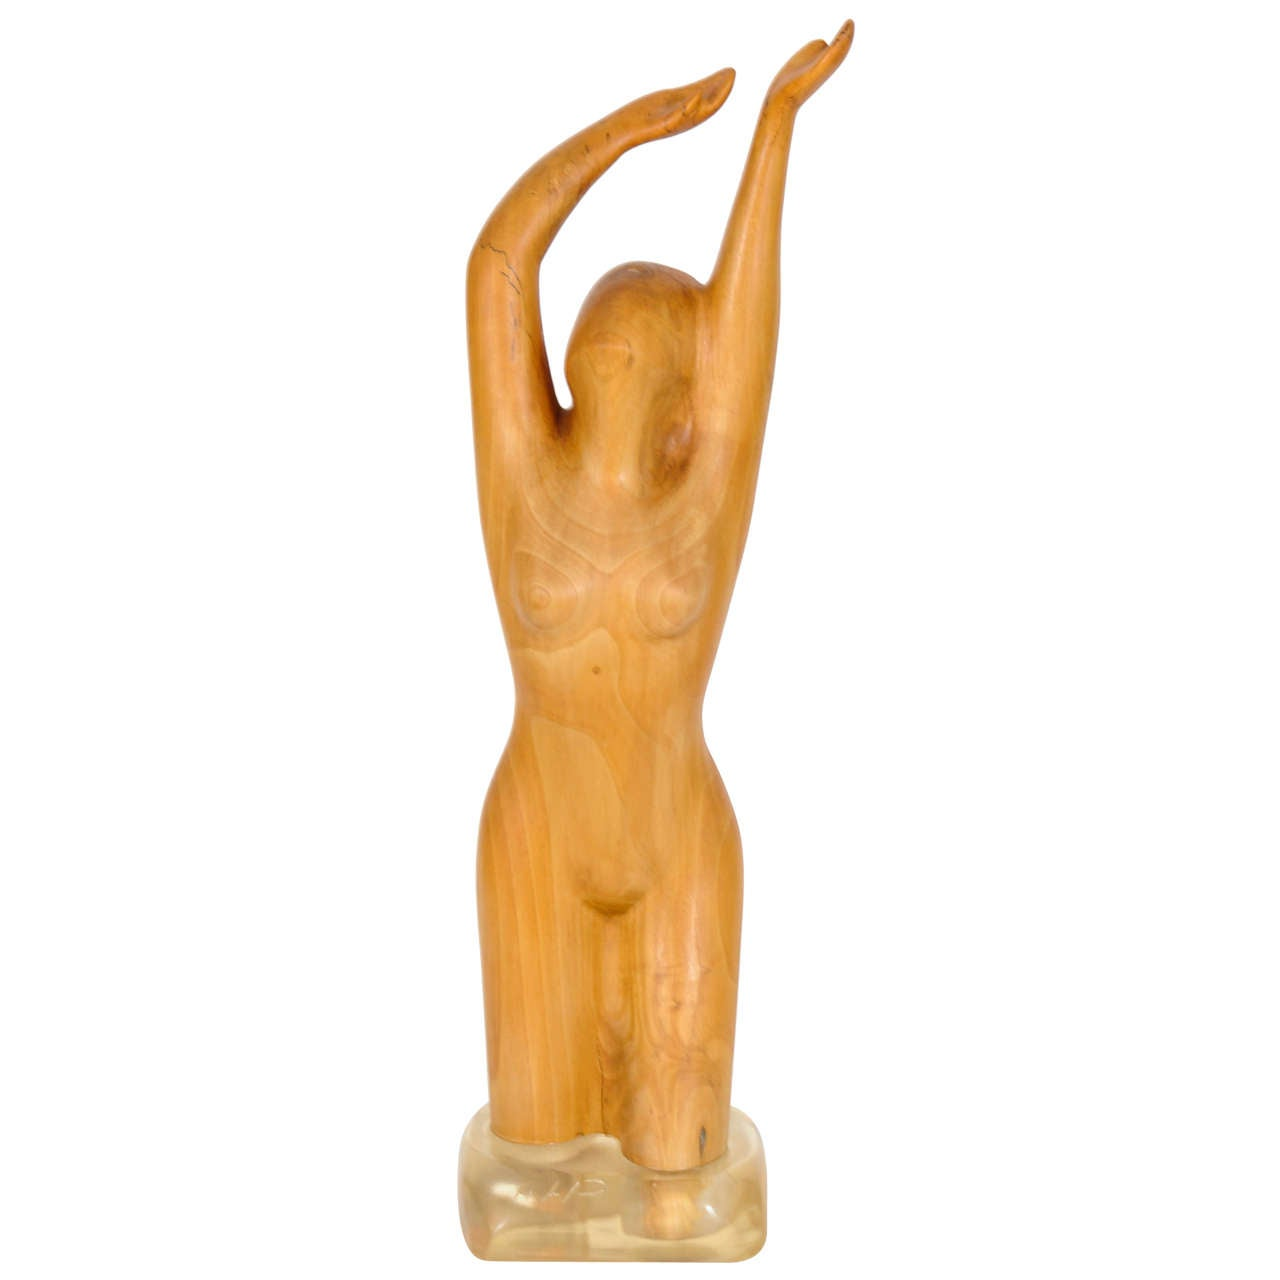 Wooden Statue of a Naked Woman Standing in Water by Dutch Sculptor Aart Prins